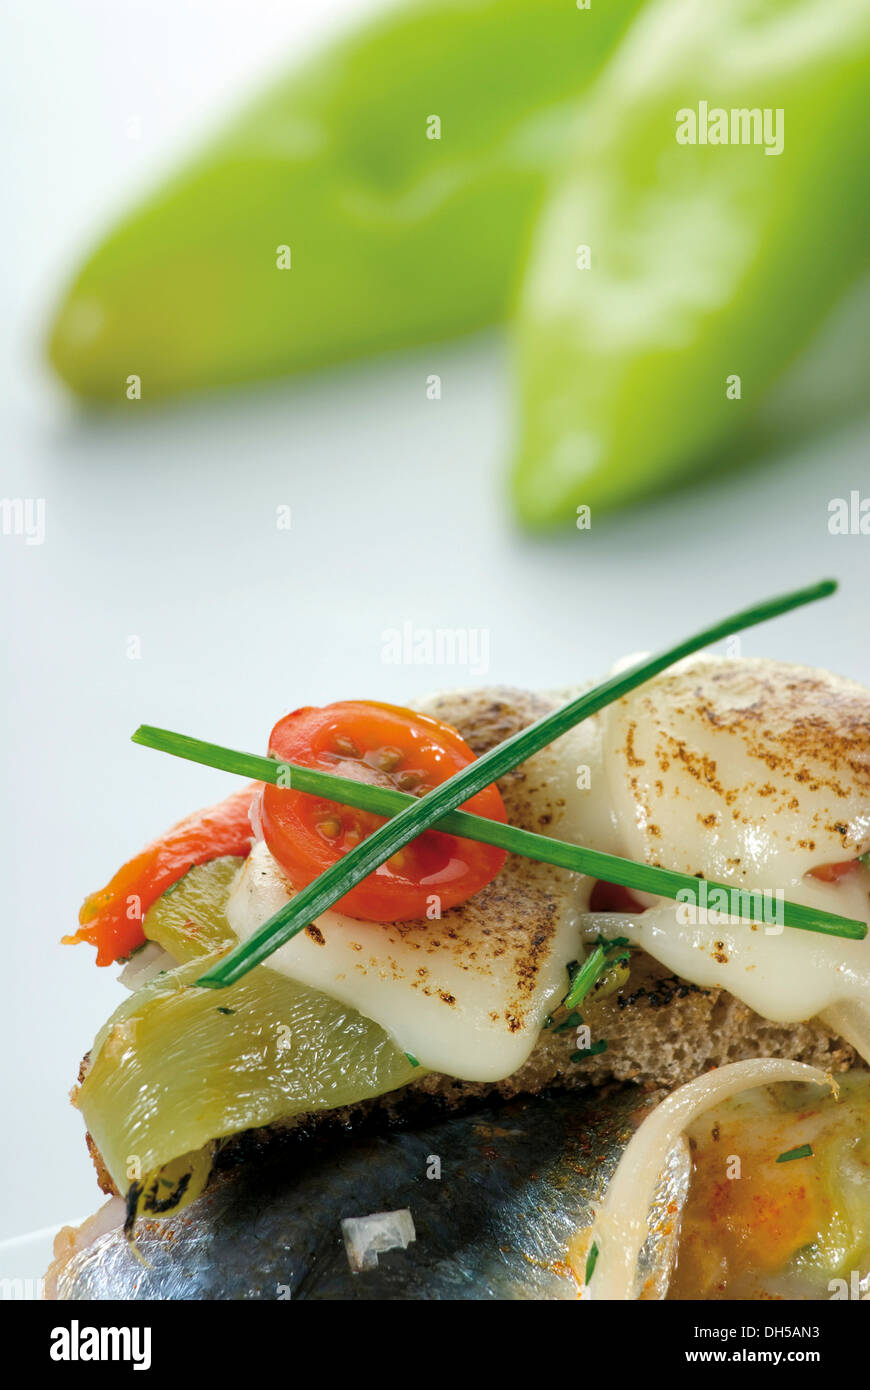 Peppers and anchovies, gratinated with melted cheese - Stock Image